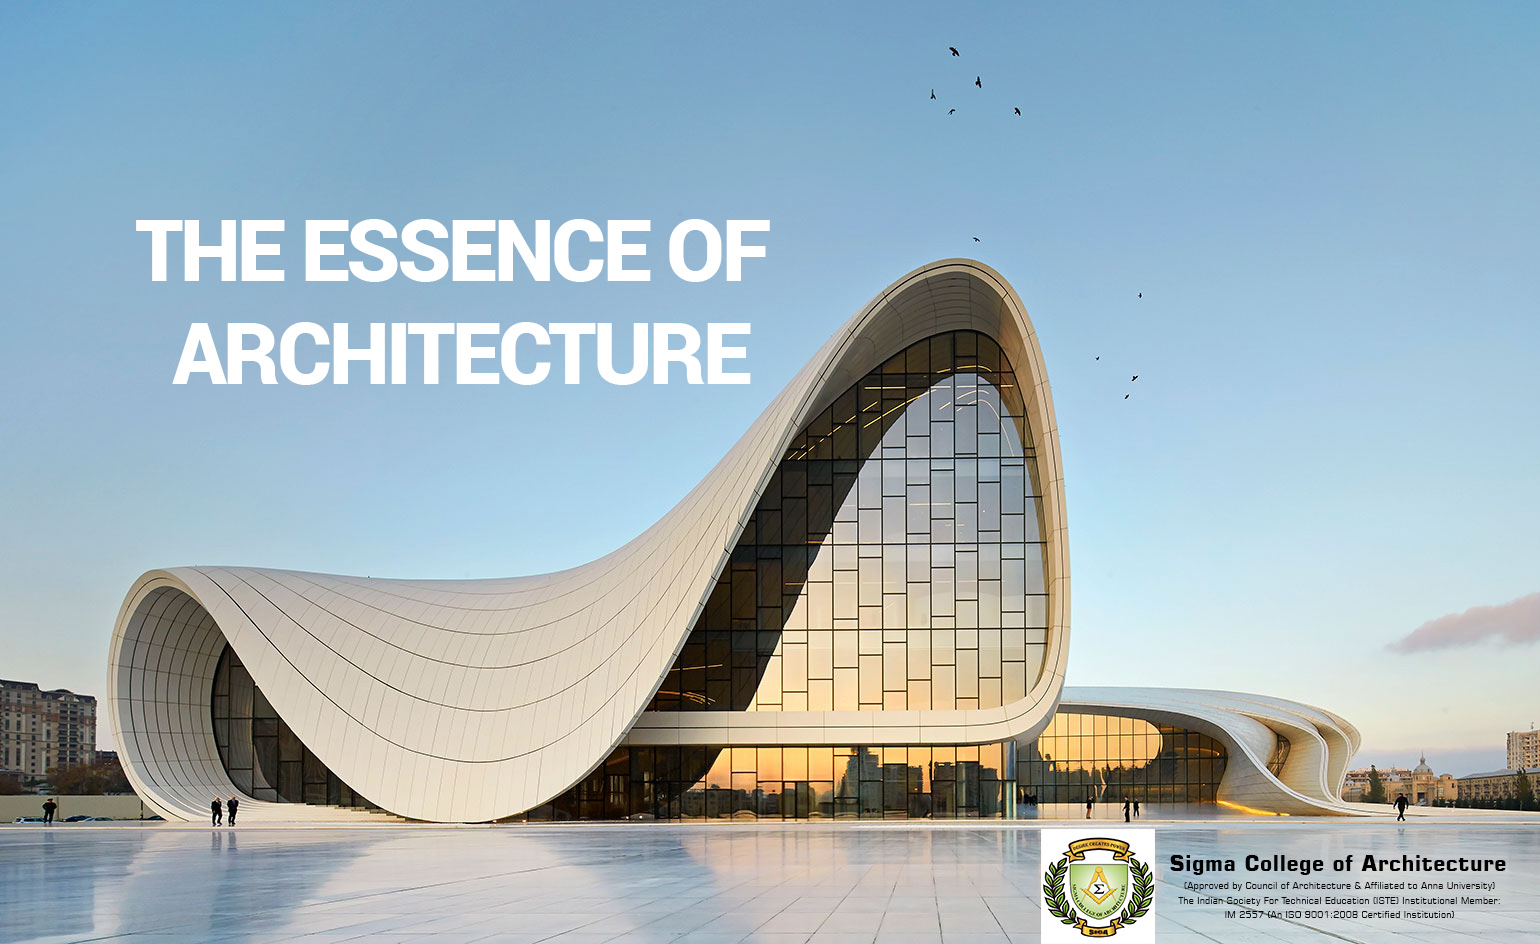 The Essence of Architecture